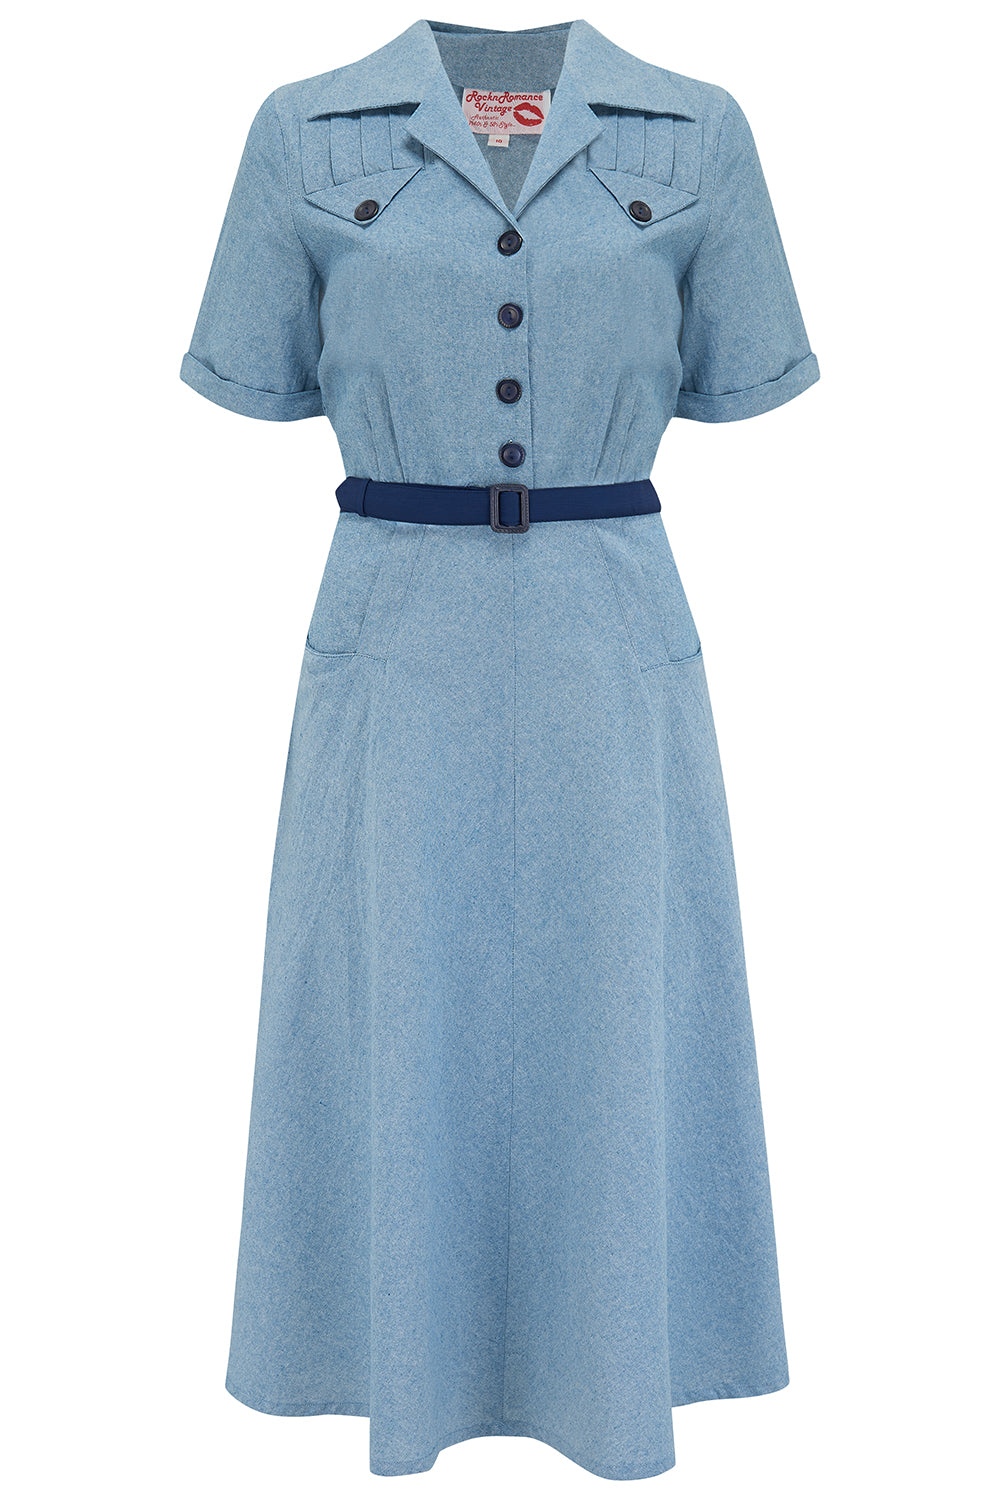 Pin Up Dresses | Pinup Clothing & Fashion The Polly Dress in Lightweight Denim Cotton Cambrey True  Authentic 1950s Vintage Style £49.00 AT vintagedancer.com